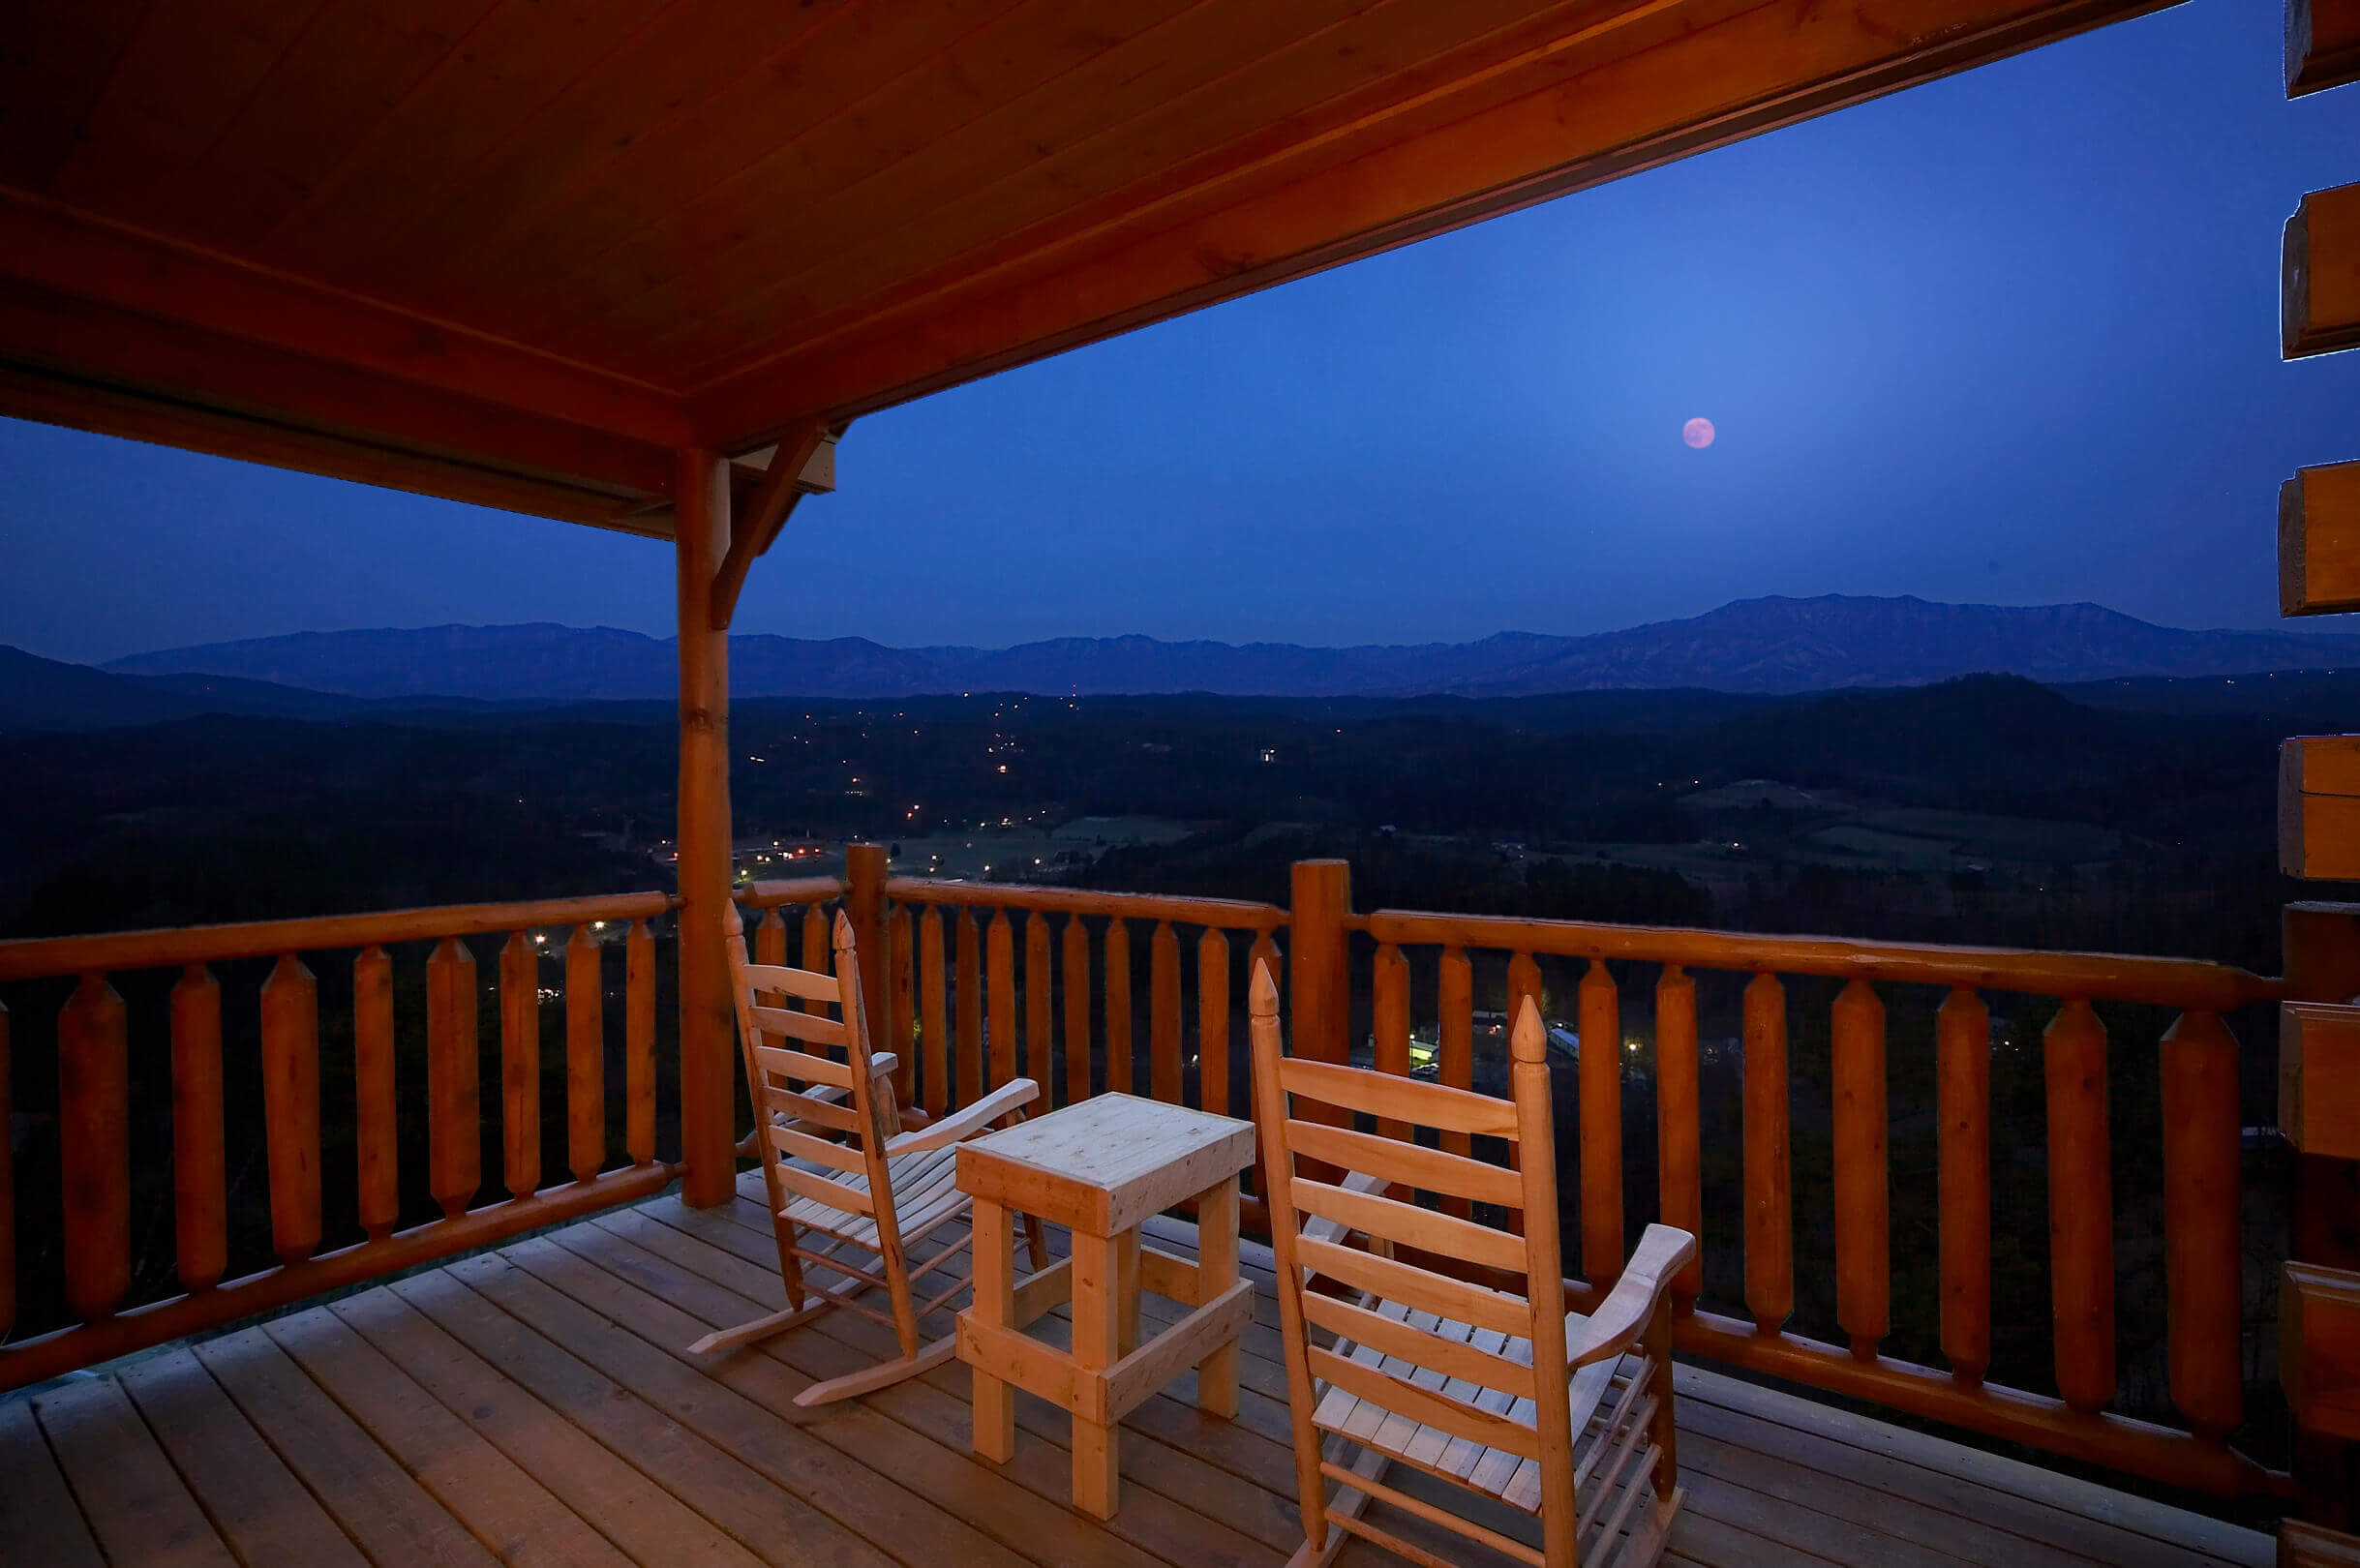 hotels resort private terrace balconies dining pigeon along with id convention cabins tennessee little gatlinburg center getimage near and onsite river exterior downtown